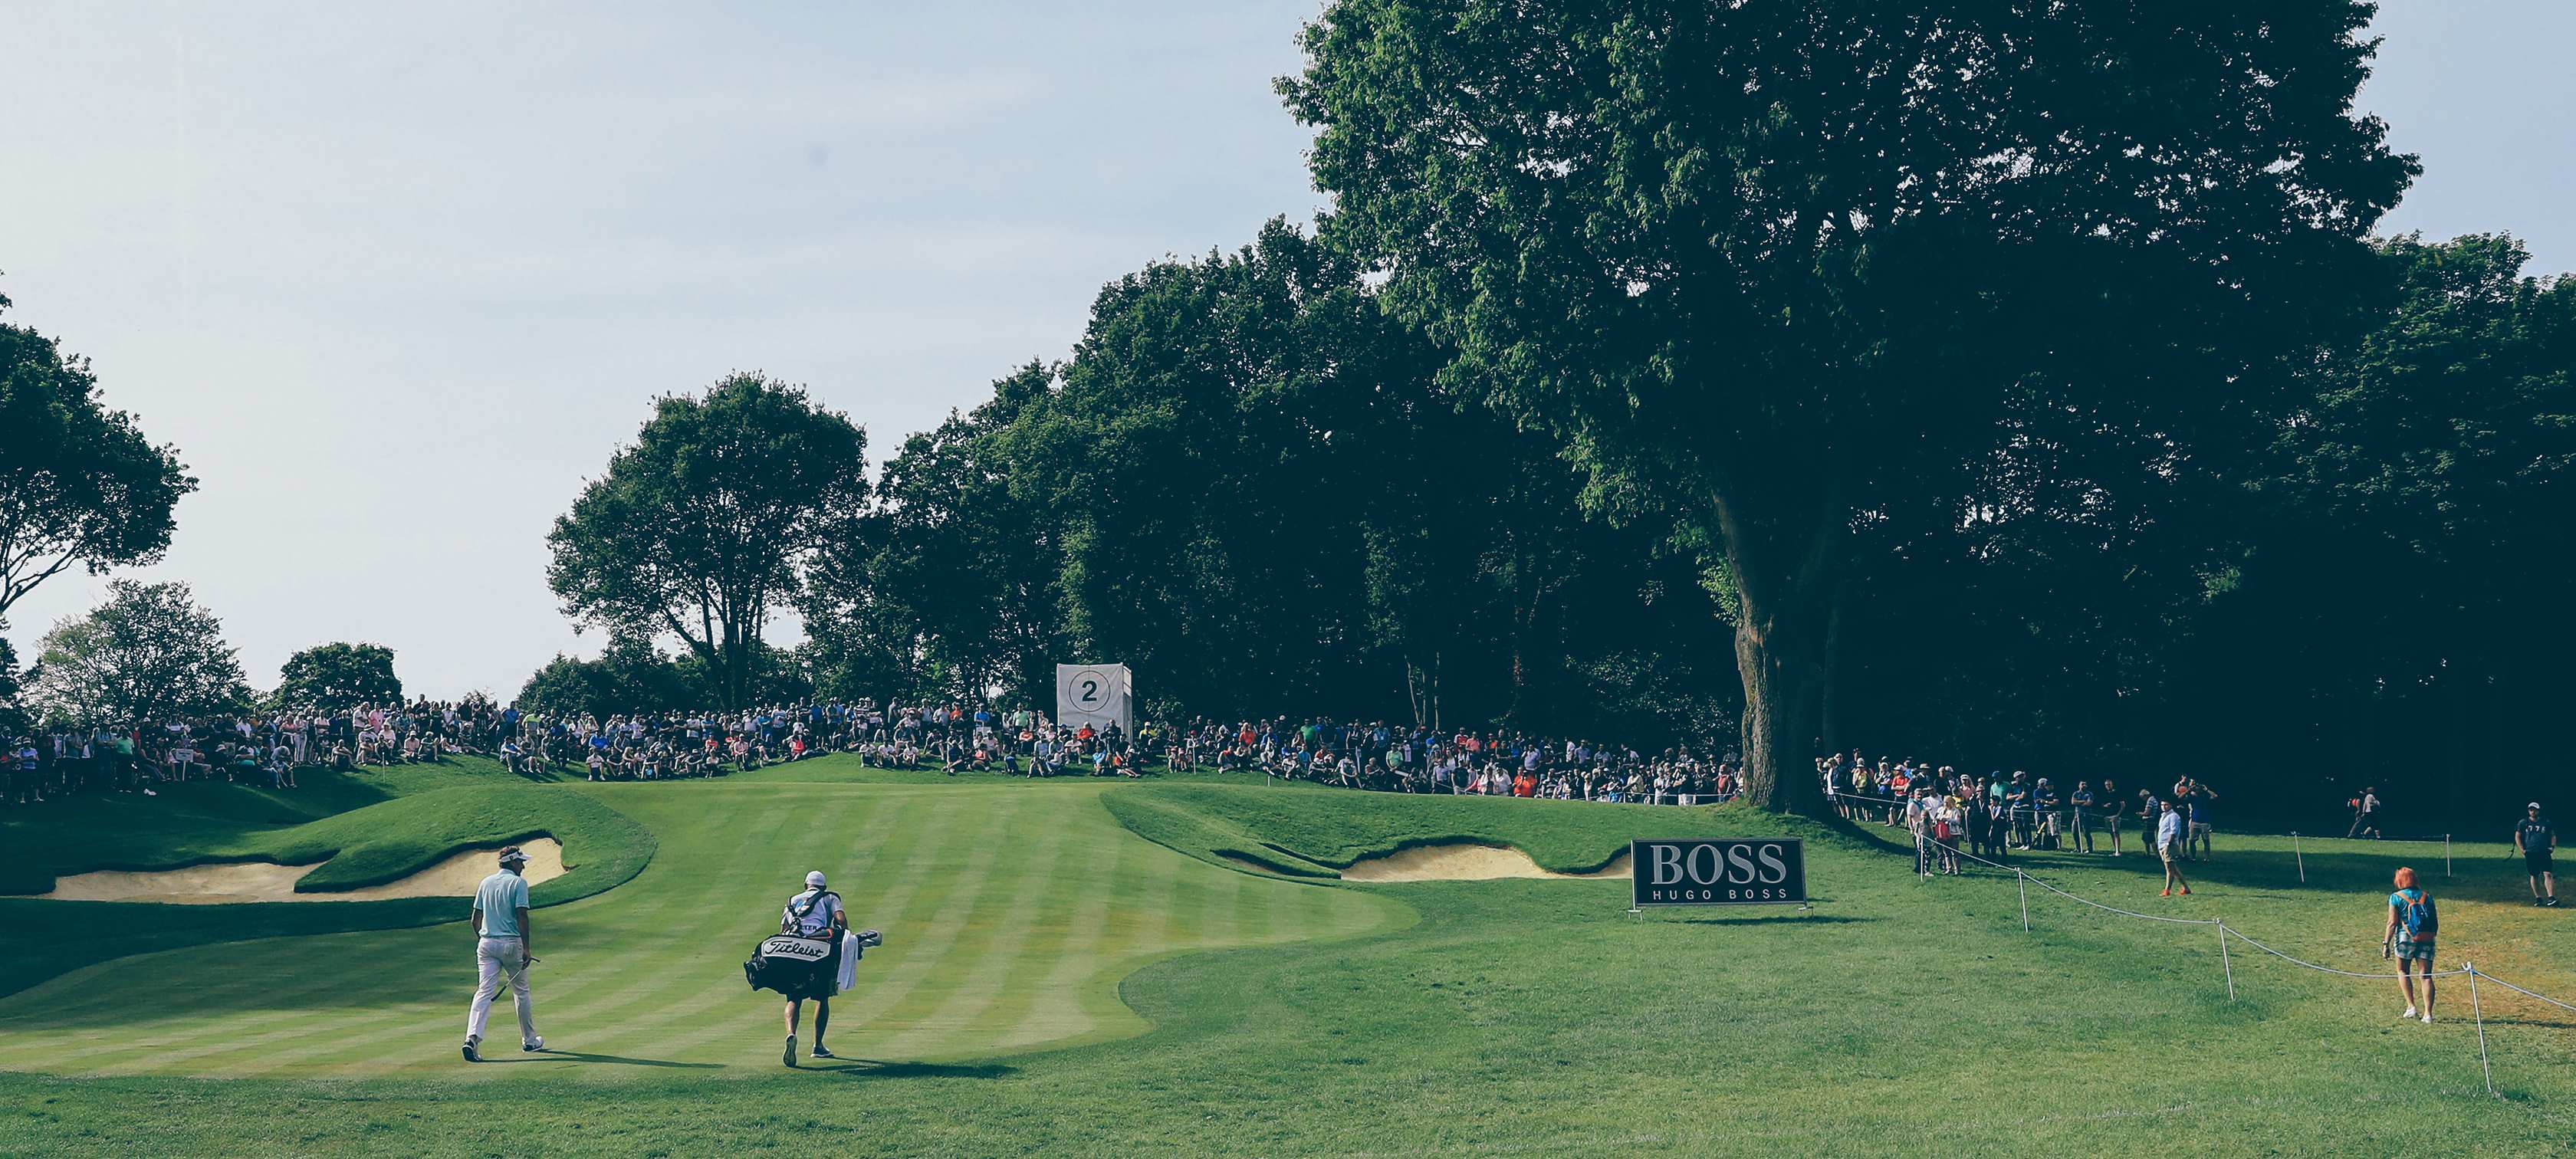 17 Concept of 2019 Bmw Championship Dates Price for 2019 Bmw Championship Dates